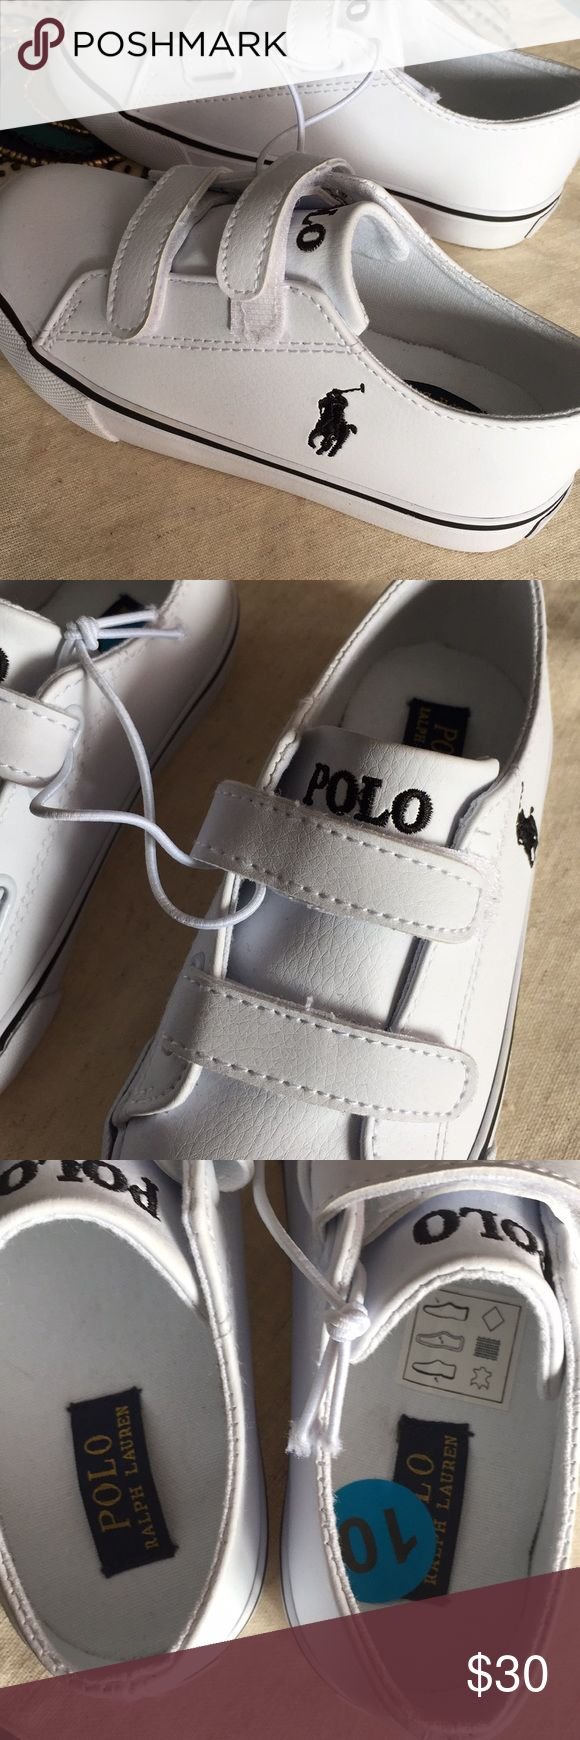 Toddlers Polo Ralph Lauren shoes Brand new Polo Ralph Lauren Shoes.. Size 10 toddler boys. Velcro for easy on and off. My son outgrew them before getting to wear them.. These are so cute and can go with so many outfits! Polo by Ralph Lauren Shoes Sneakers